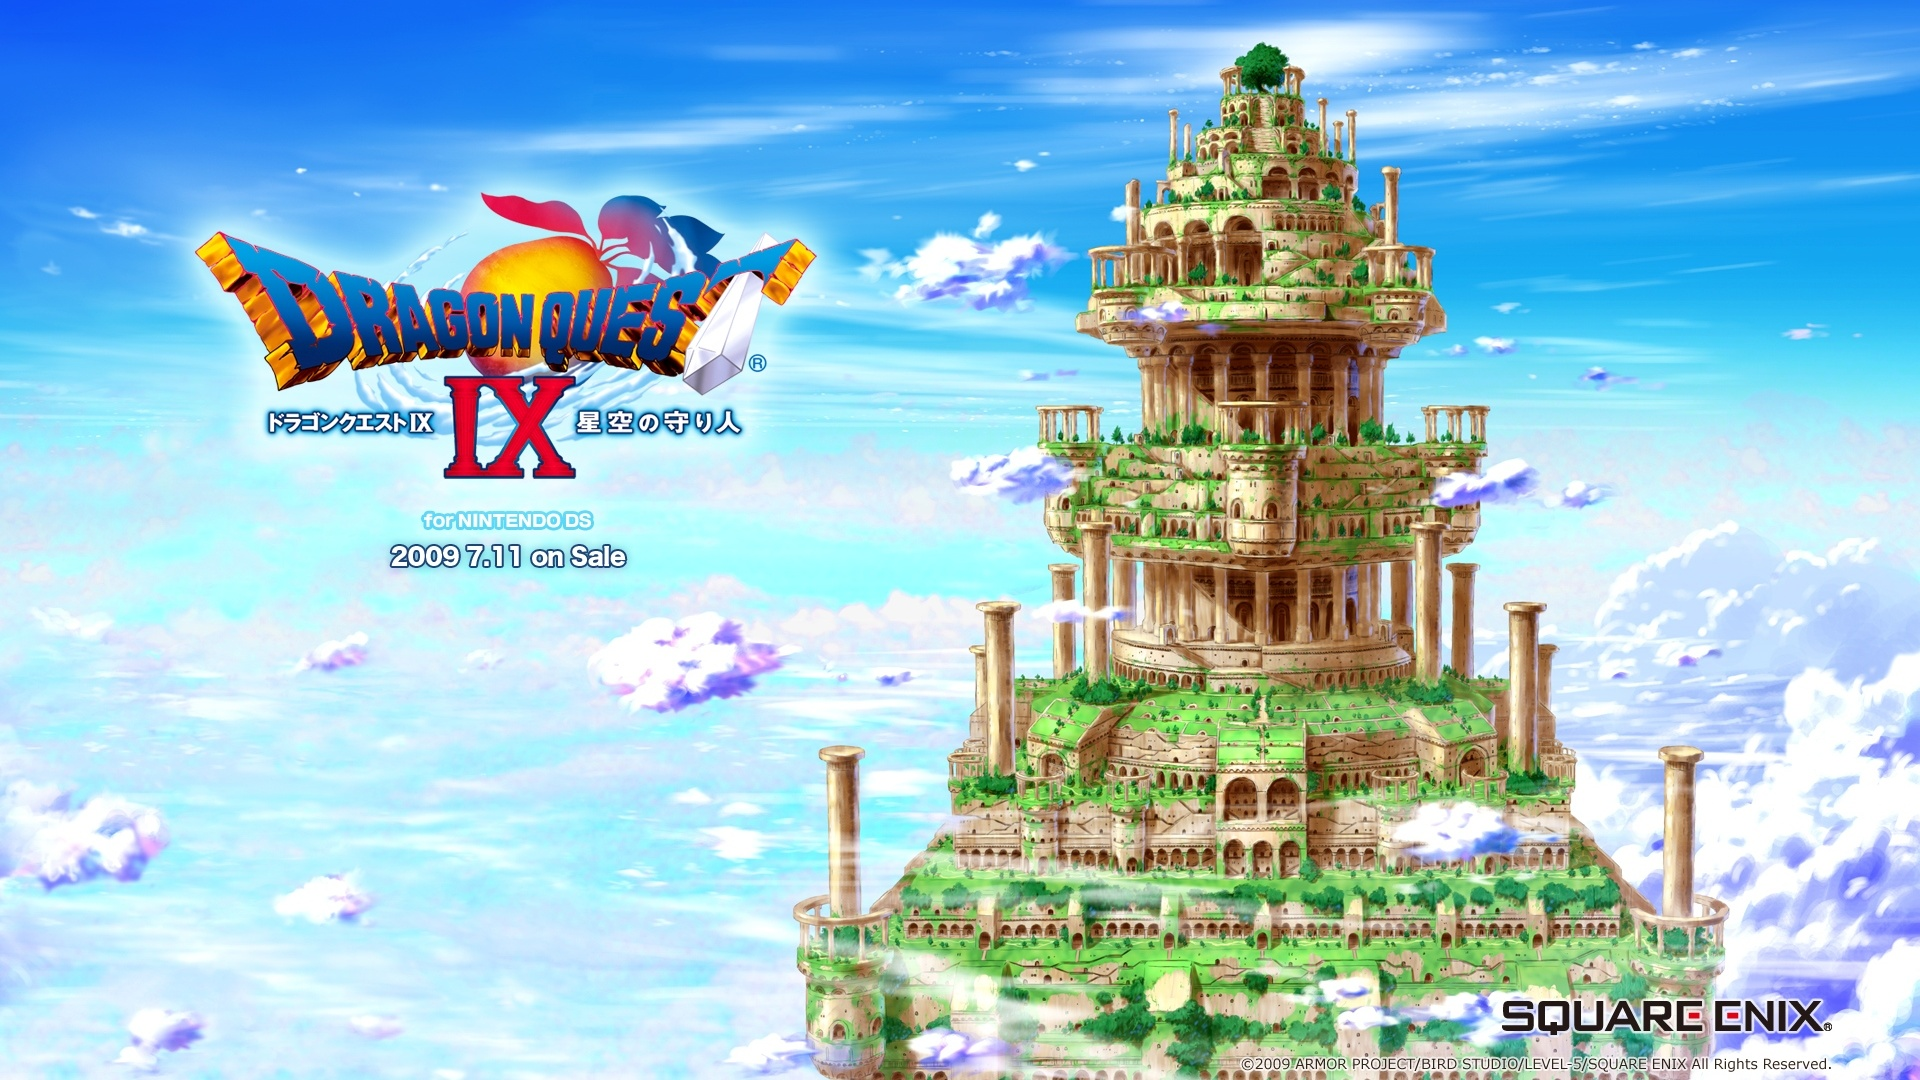 1920x1080 Dragon Quest IX Desktop PC And Mac Wallpaper